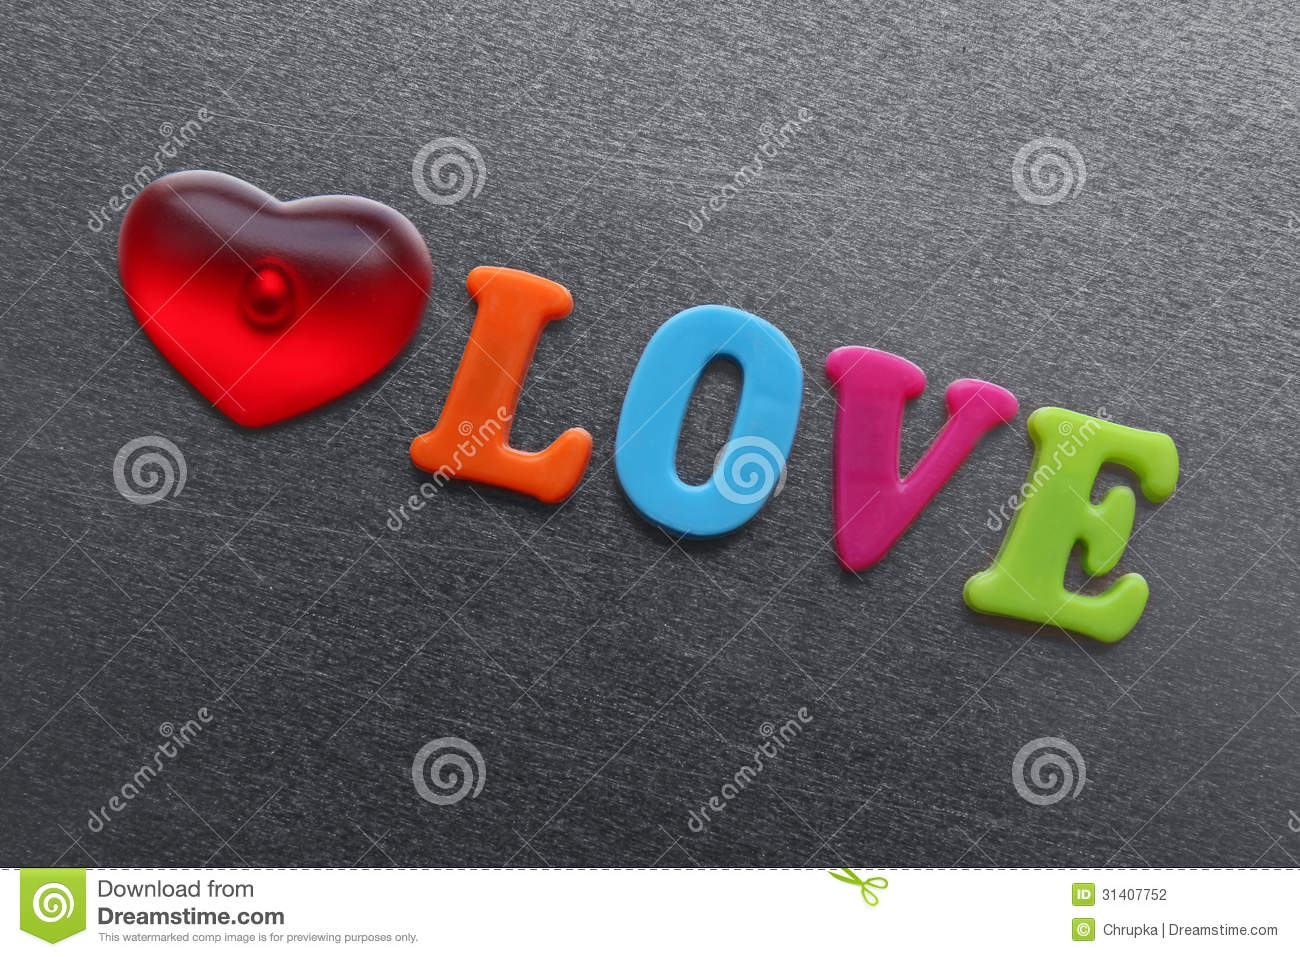 Word Love With Red Heart Spelled Out Using Colored Fridge Magnets Stock Photo  Image of